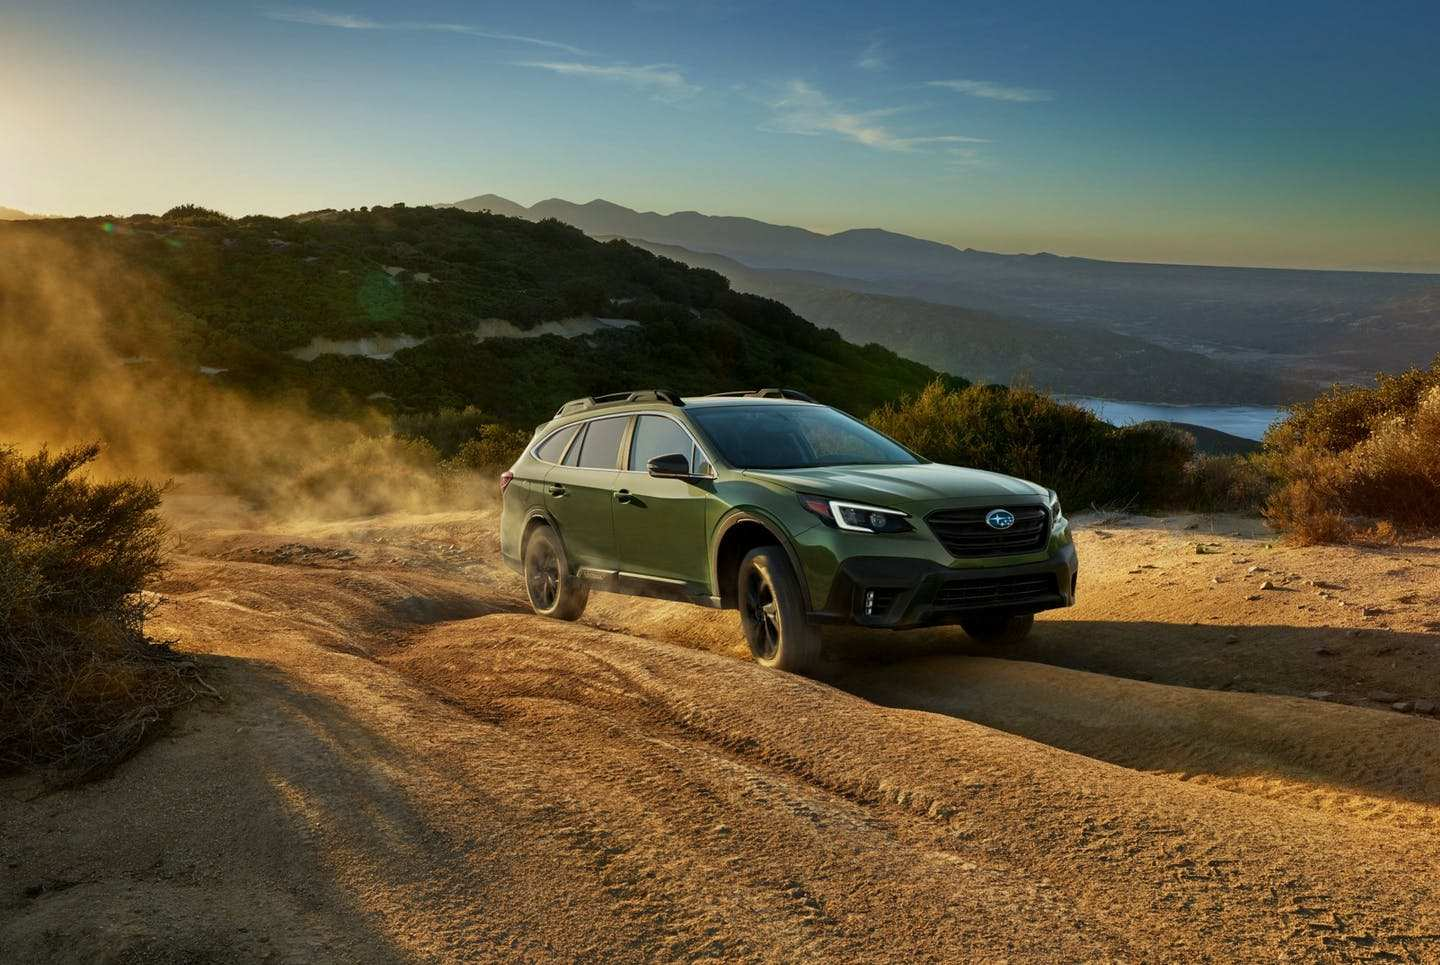 25 All New 2020 Subaru Outback Images